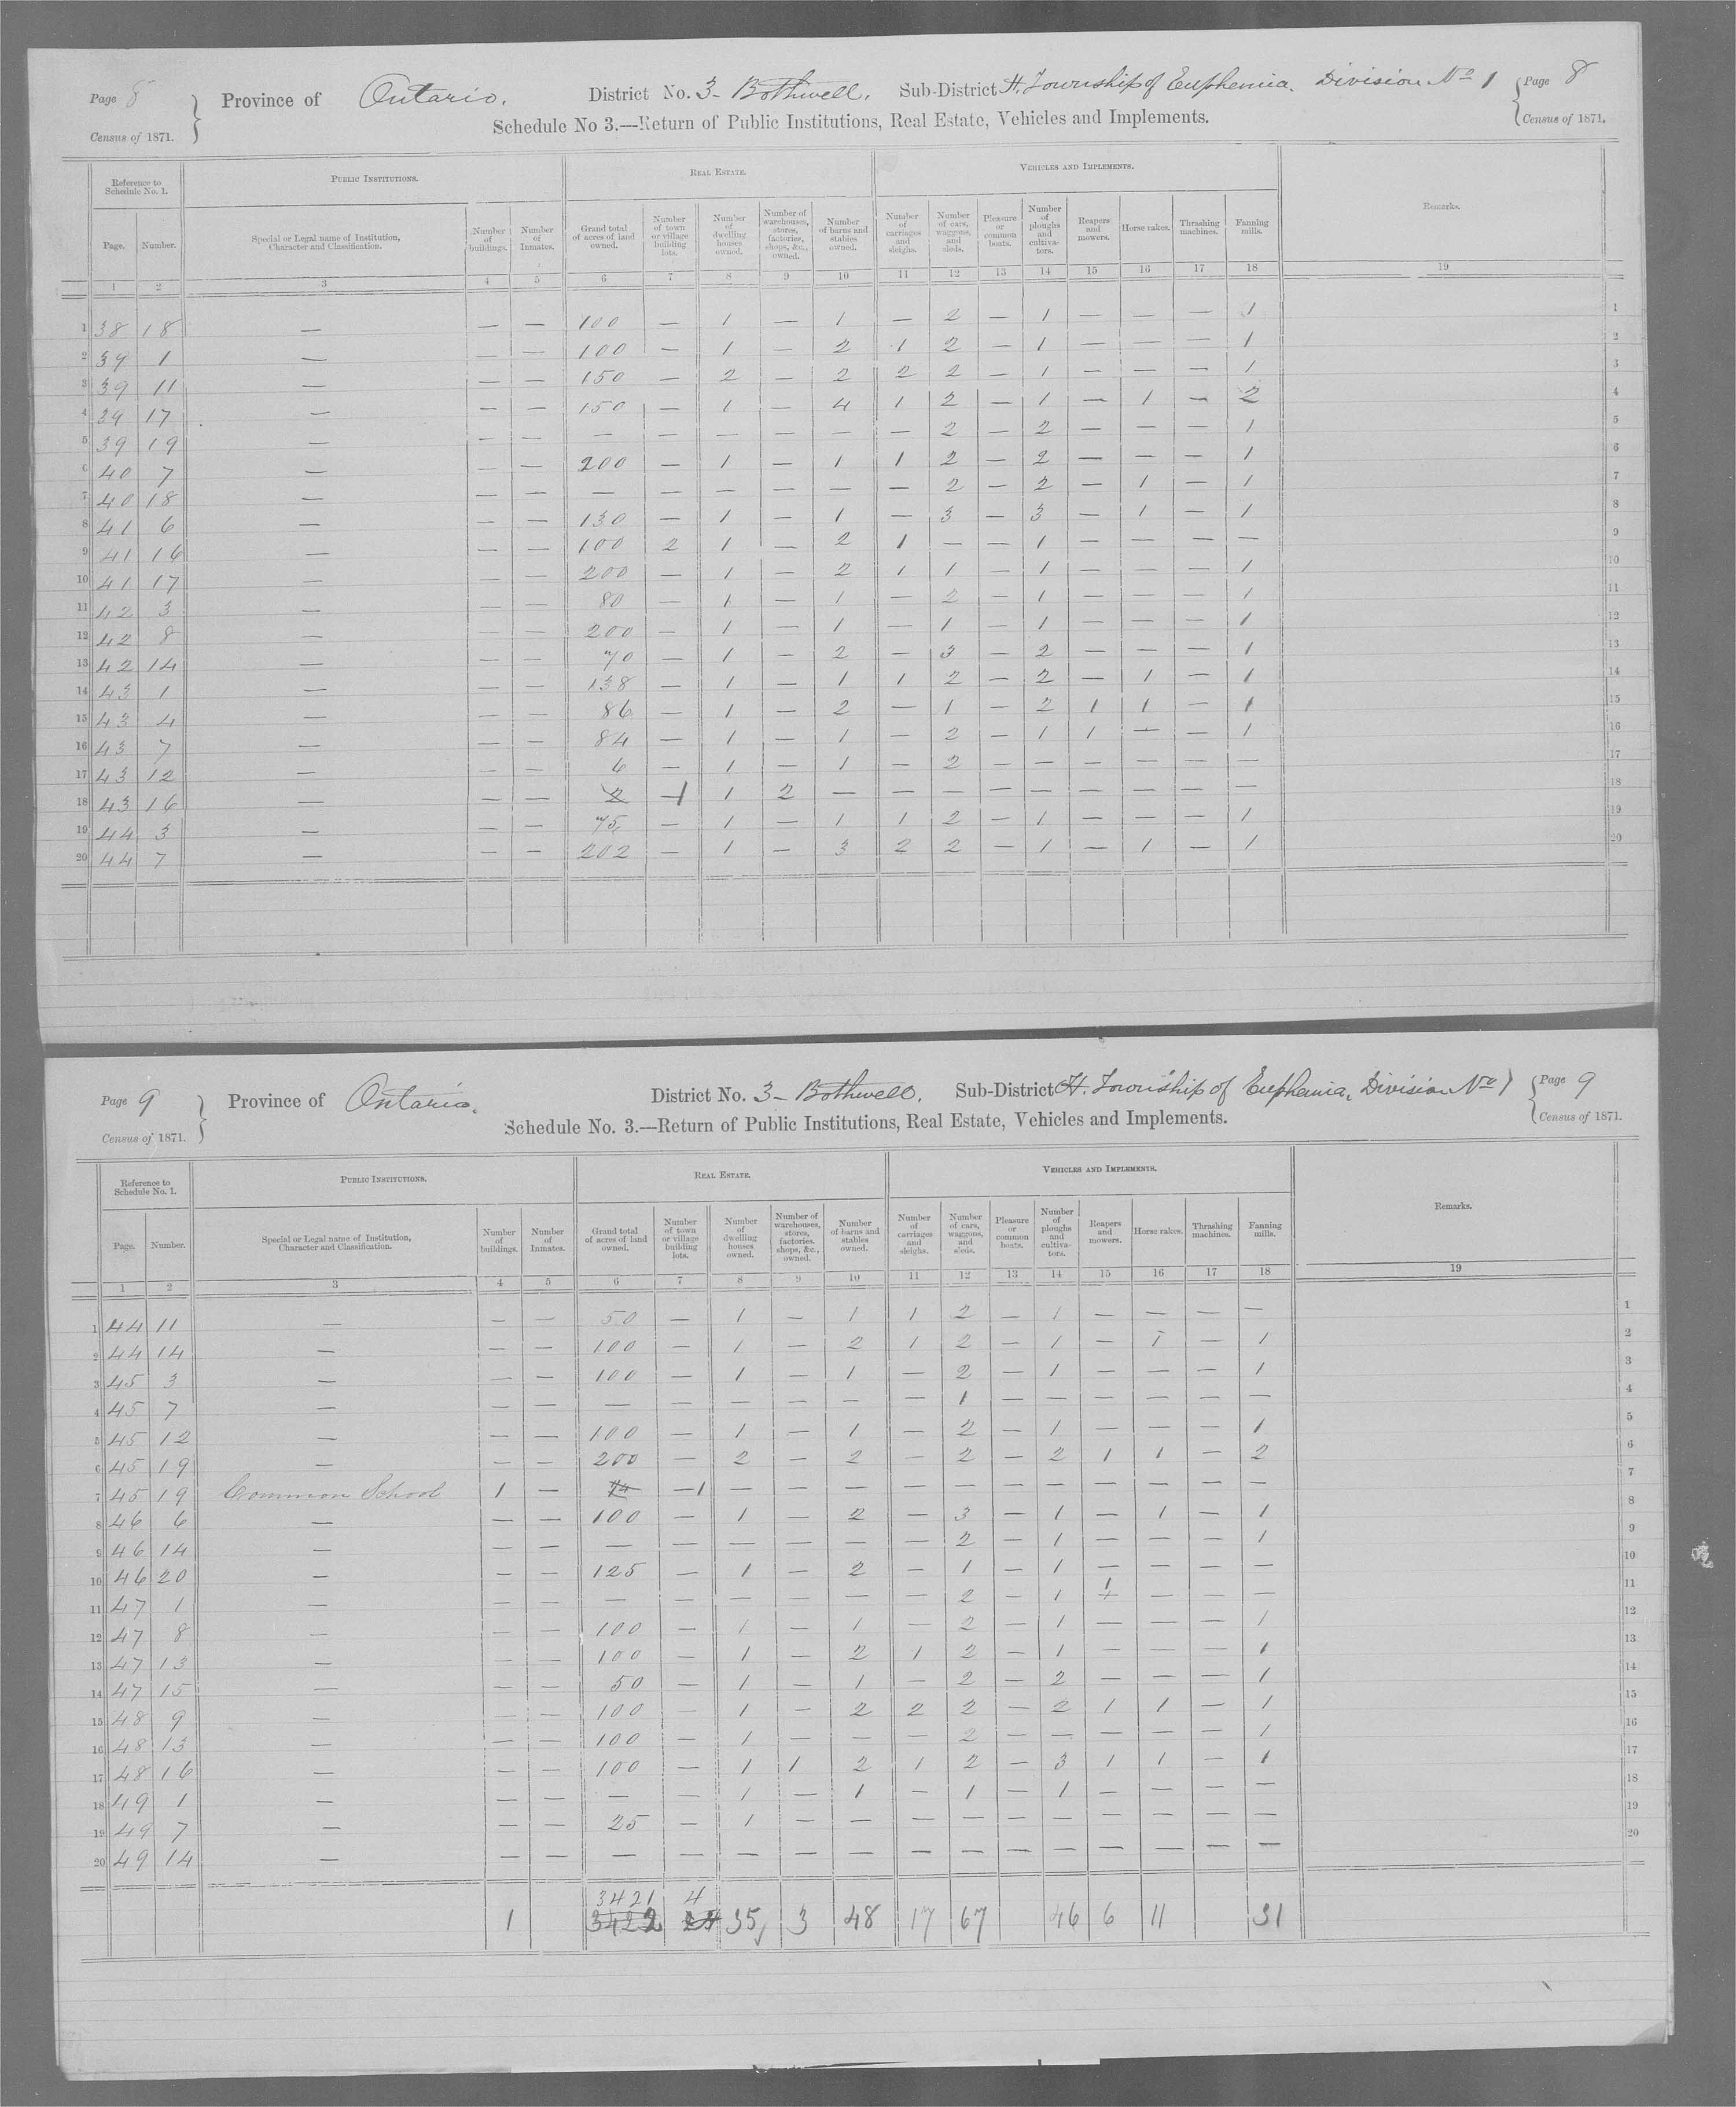 Title: Census of Canada, 1871 - Mikan Number: 142105 - Microform: c-9894